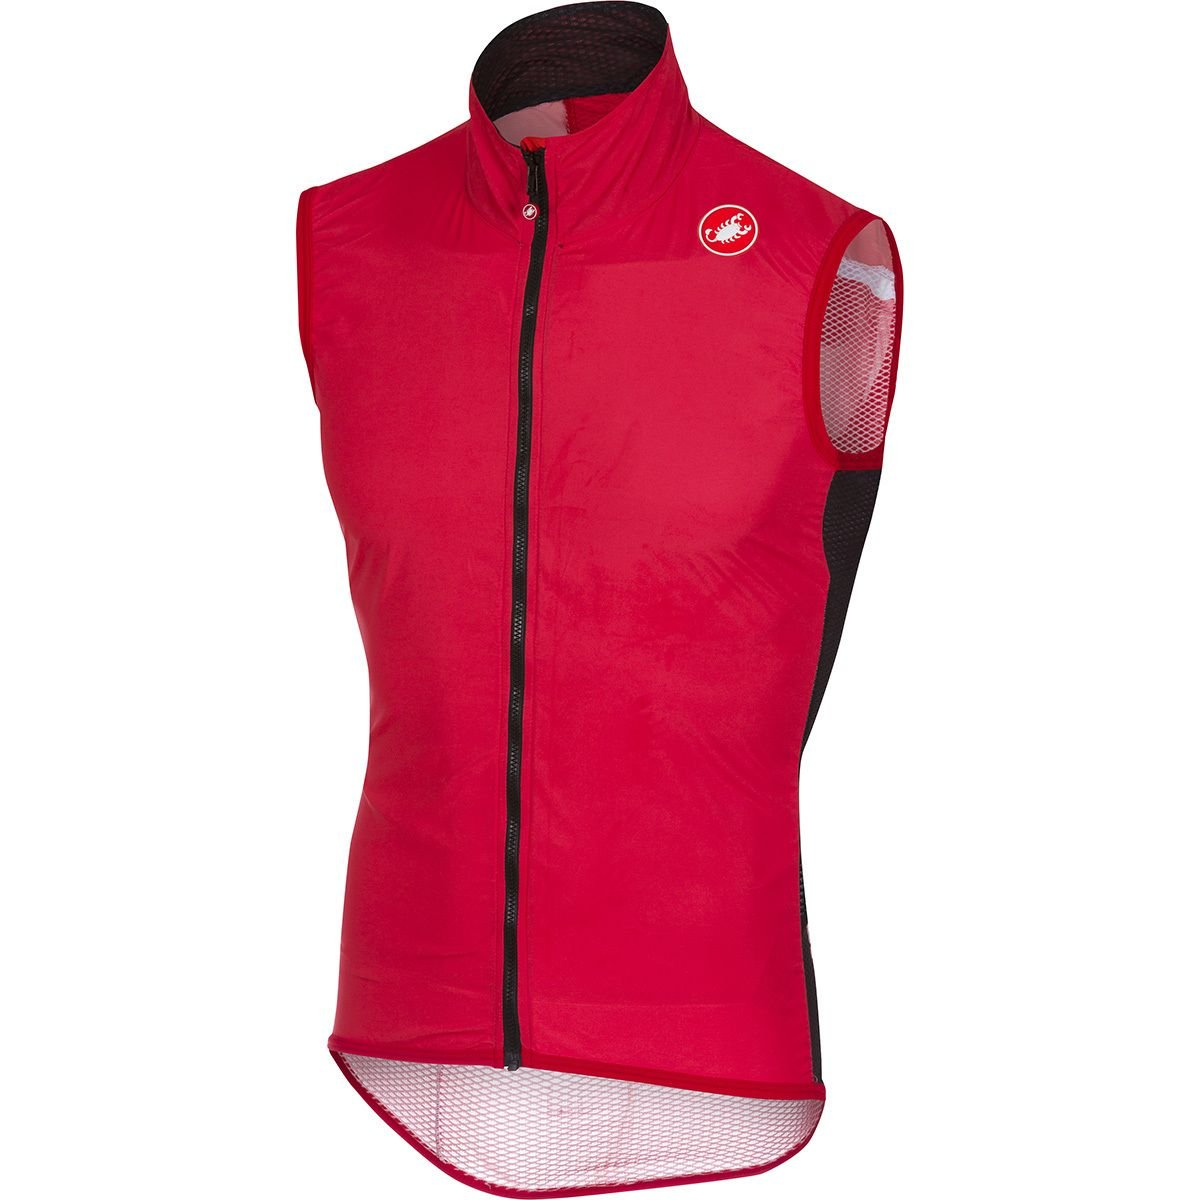 Castelli Pro Light Wind Vest - Men's Red, XXL by Castelli